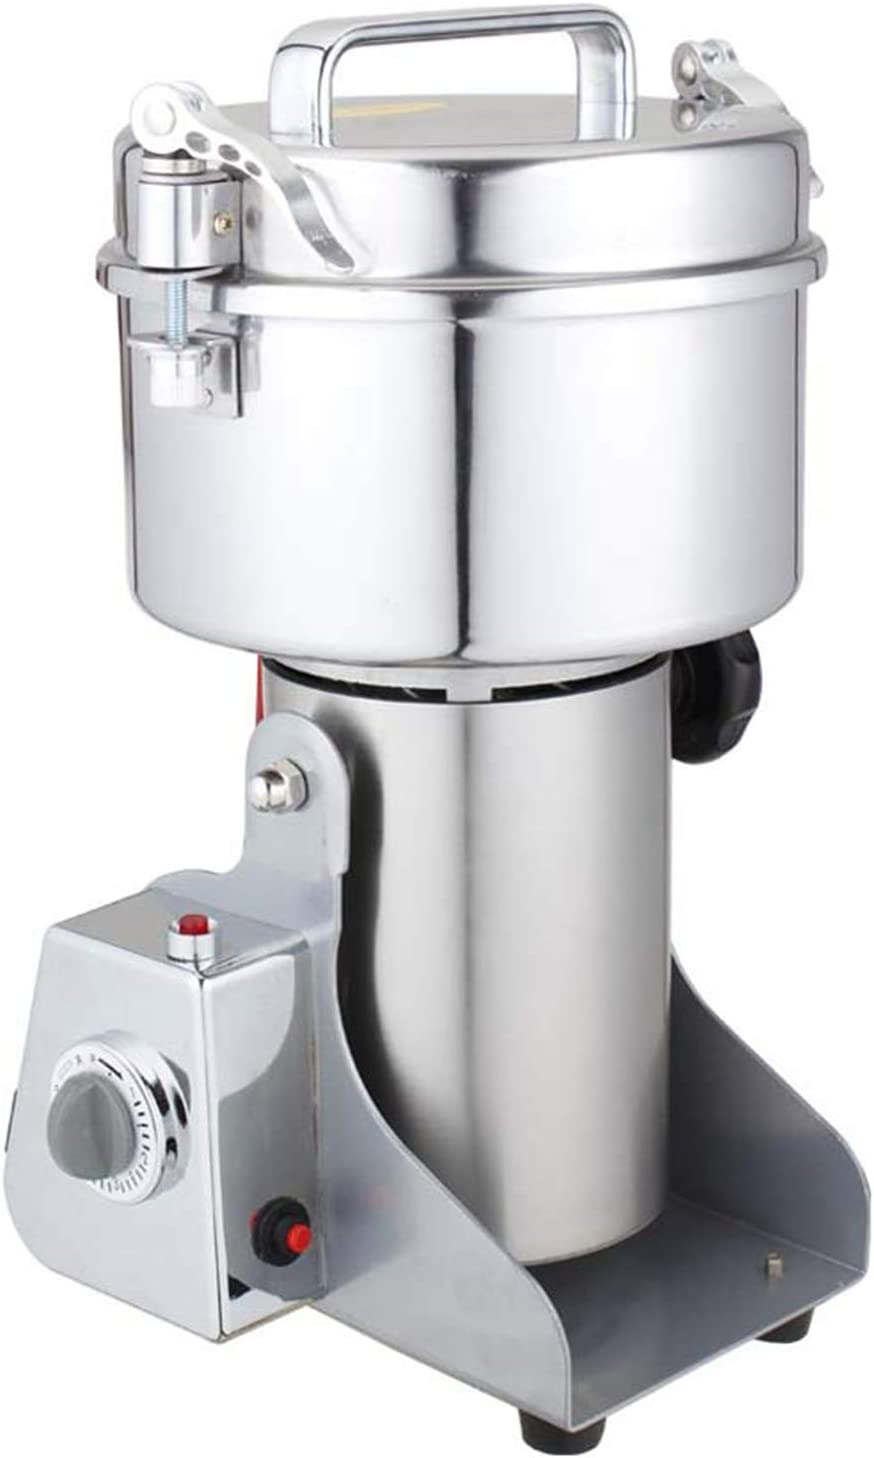 ALX-Dec 1000g Electric Grain Mills Grinder 304 Stainless Steel Food Mill for Corn/Coffee Beans/Herb/Spice, Home Portable Pulverizer Corn with Timer, 110V